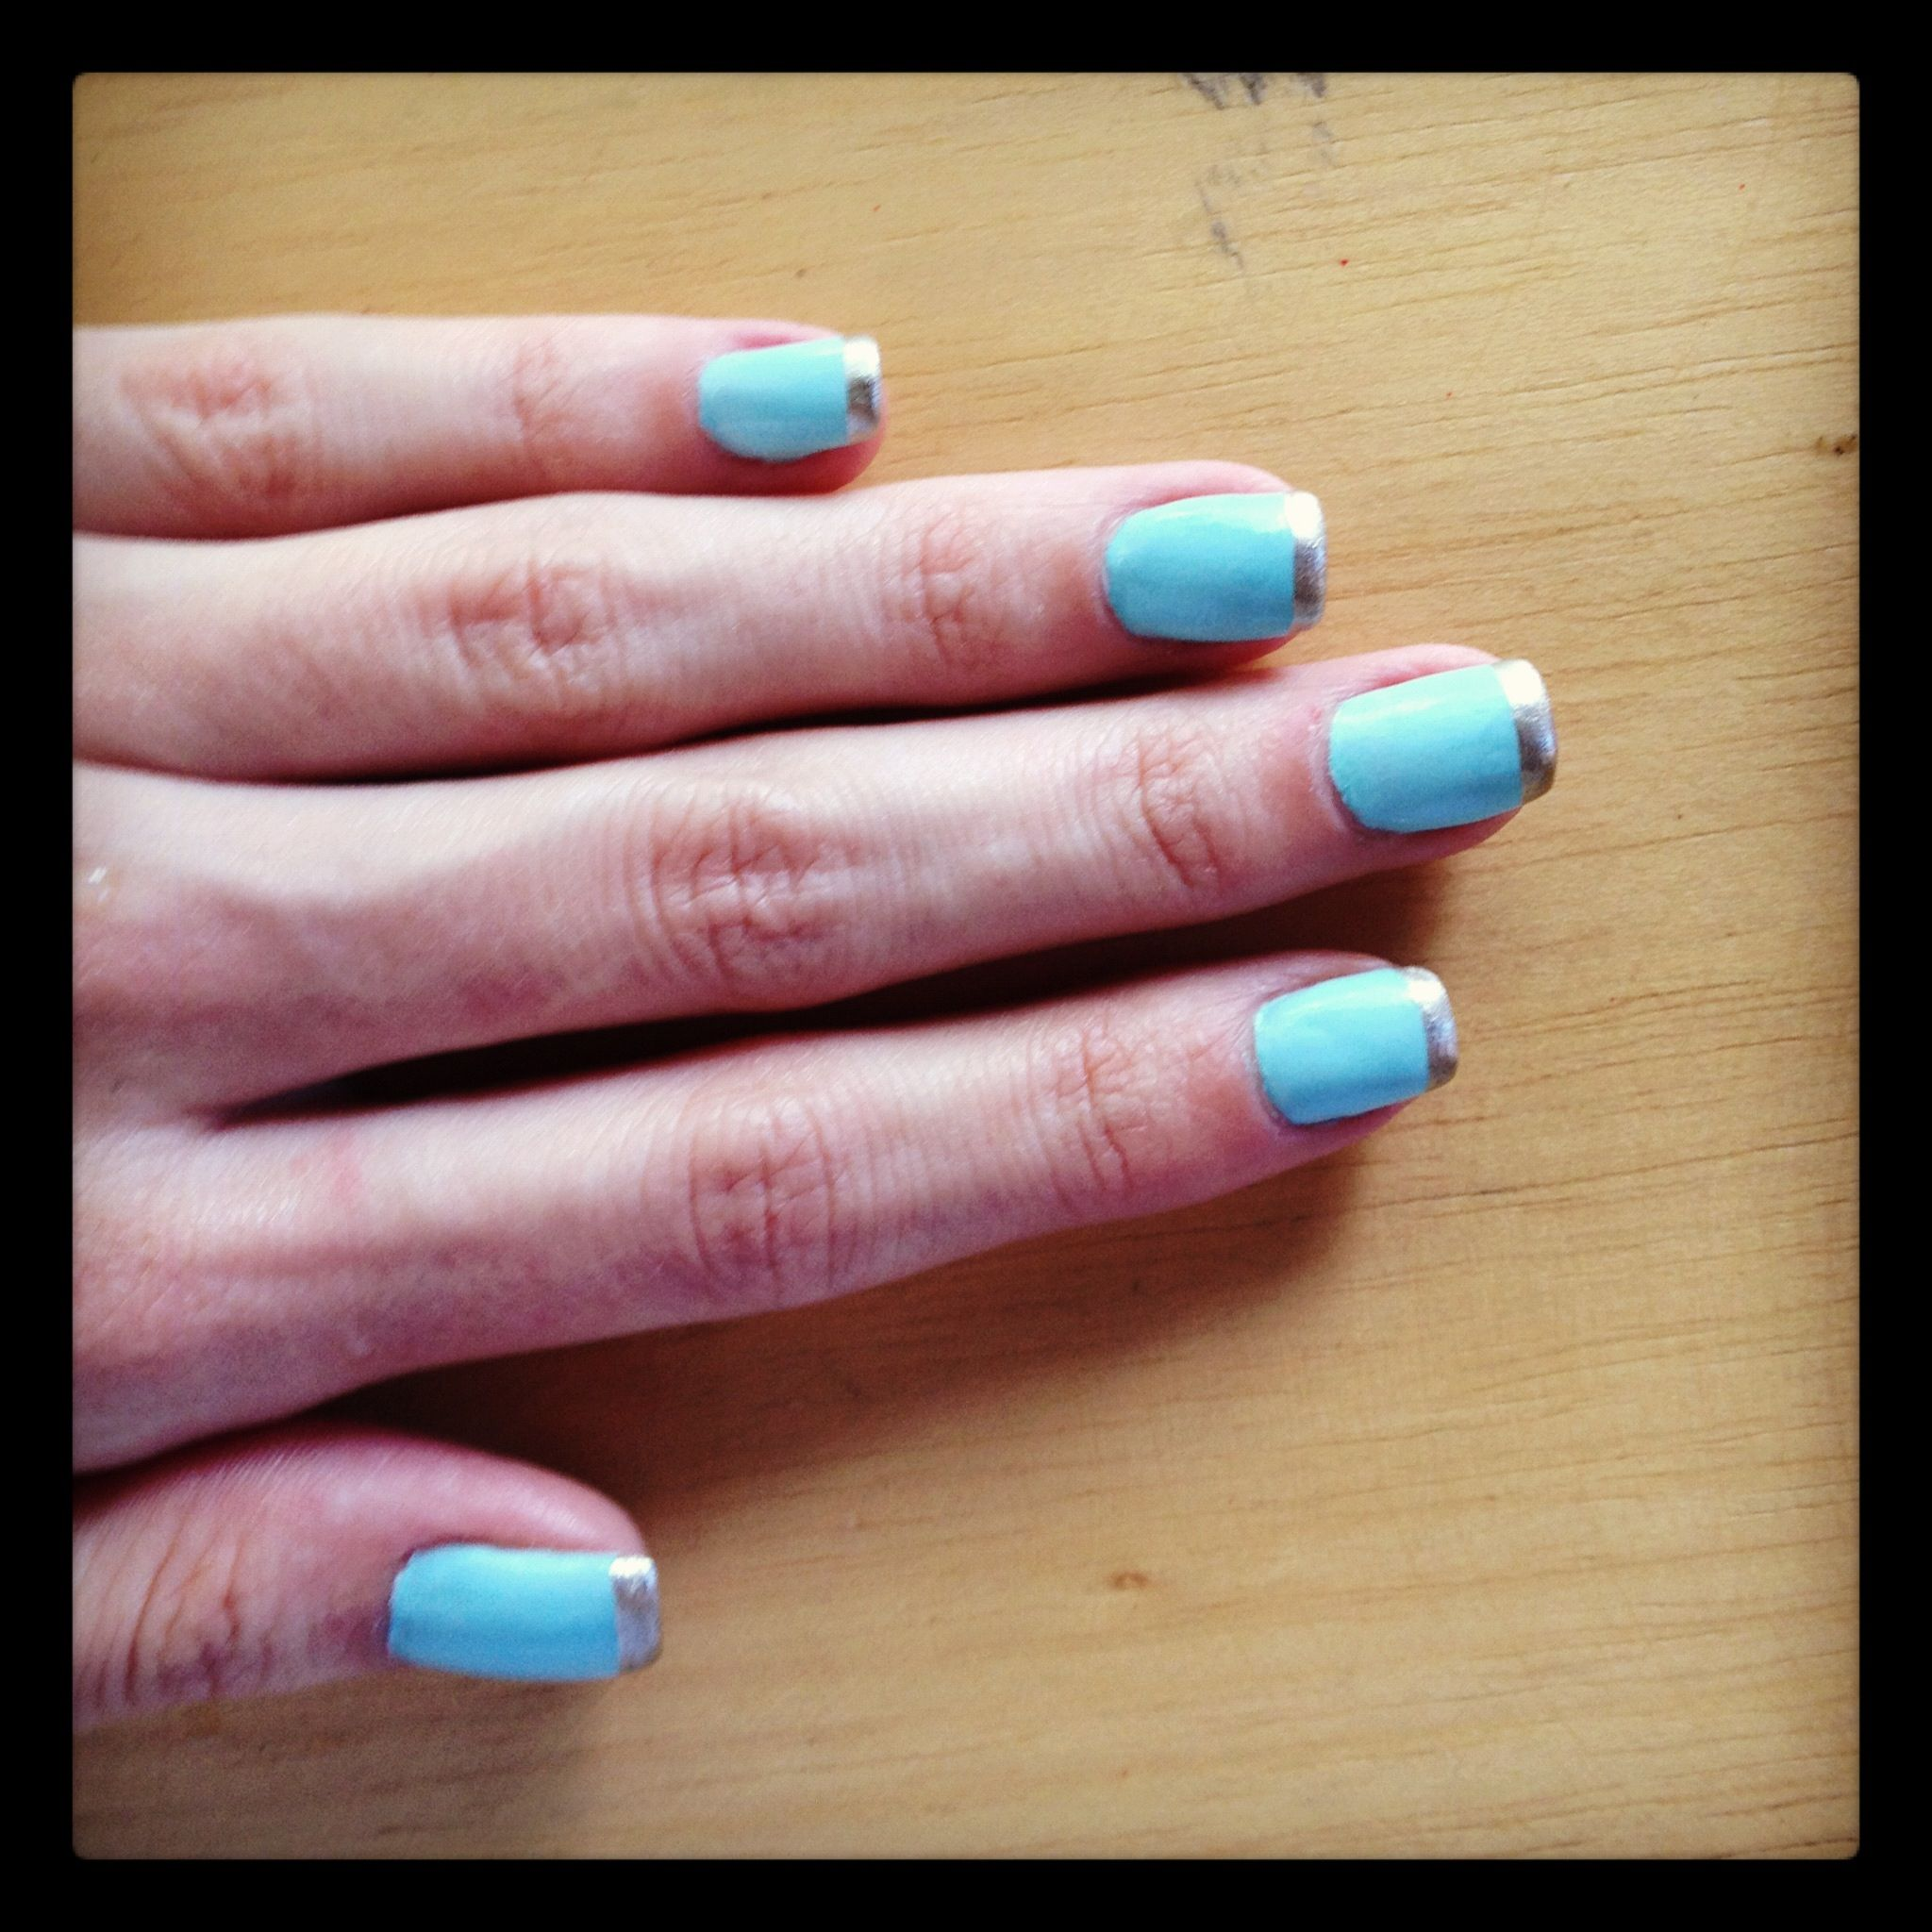 Crazy french manicure! Life is color!